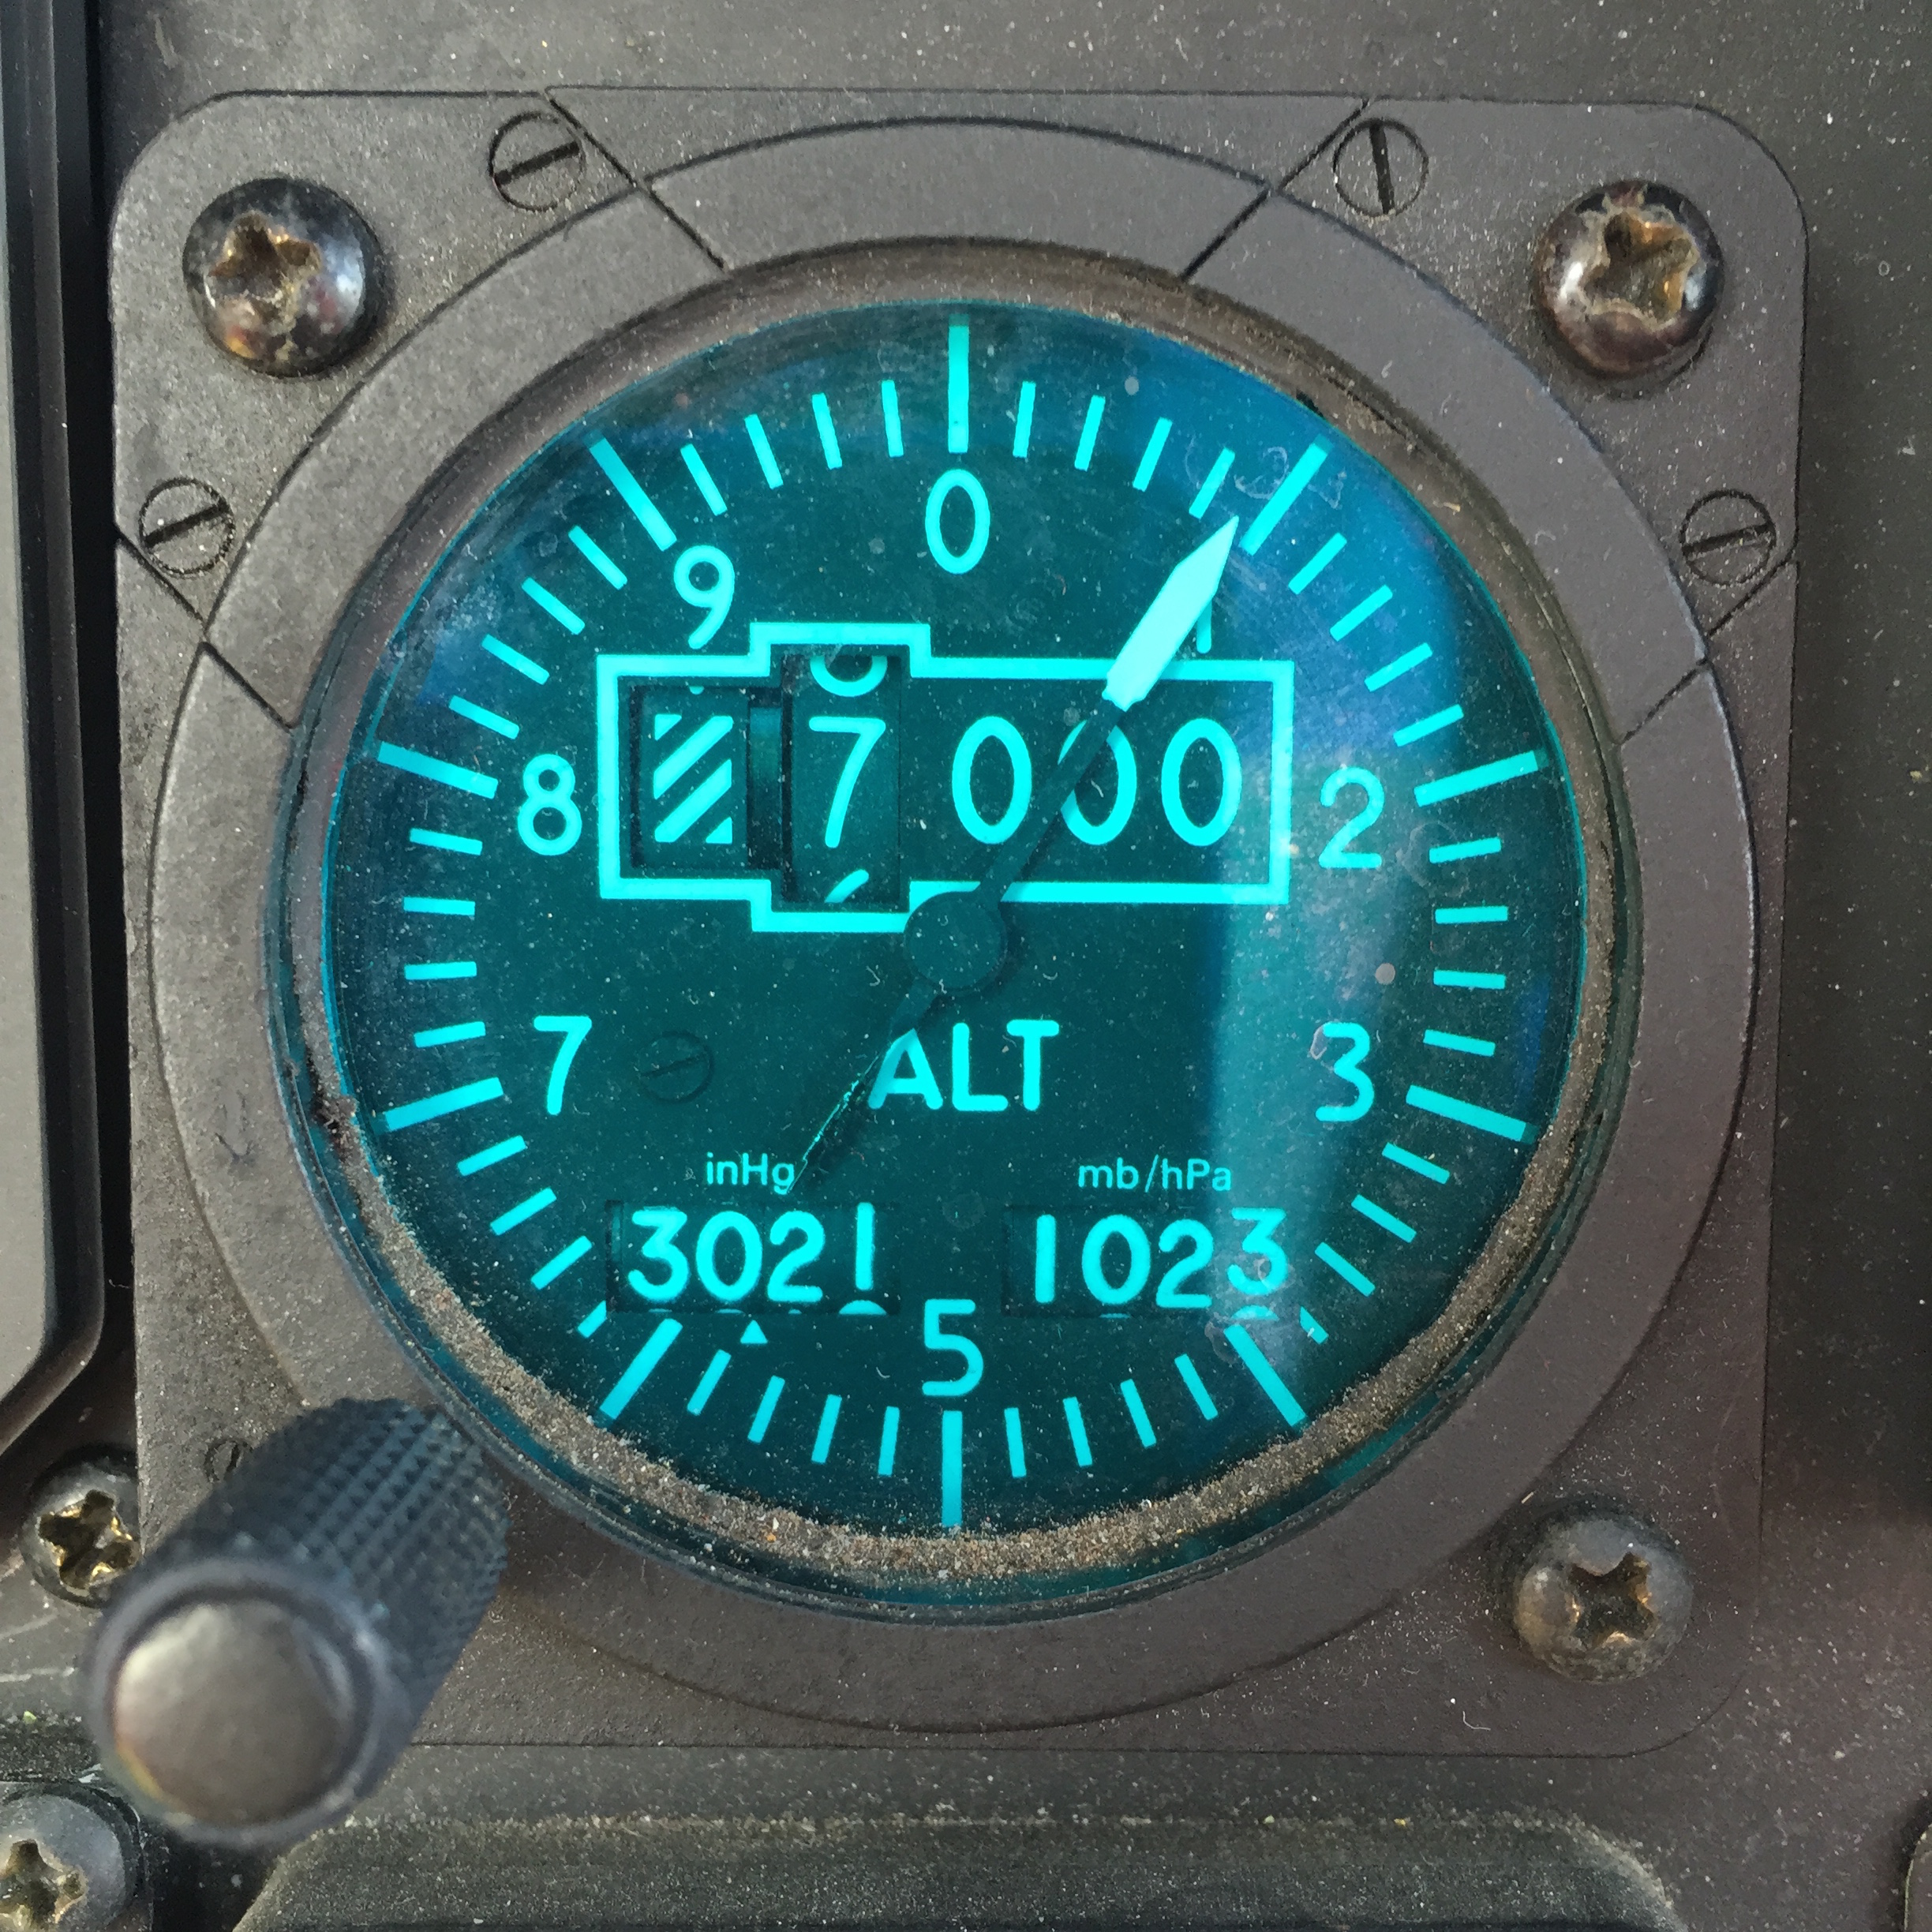 Take a look at this altimeter from a Agusta 106 Power. - Notice the pressure in the lower left is in inHg.